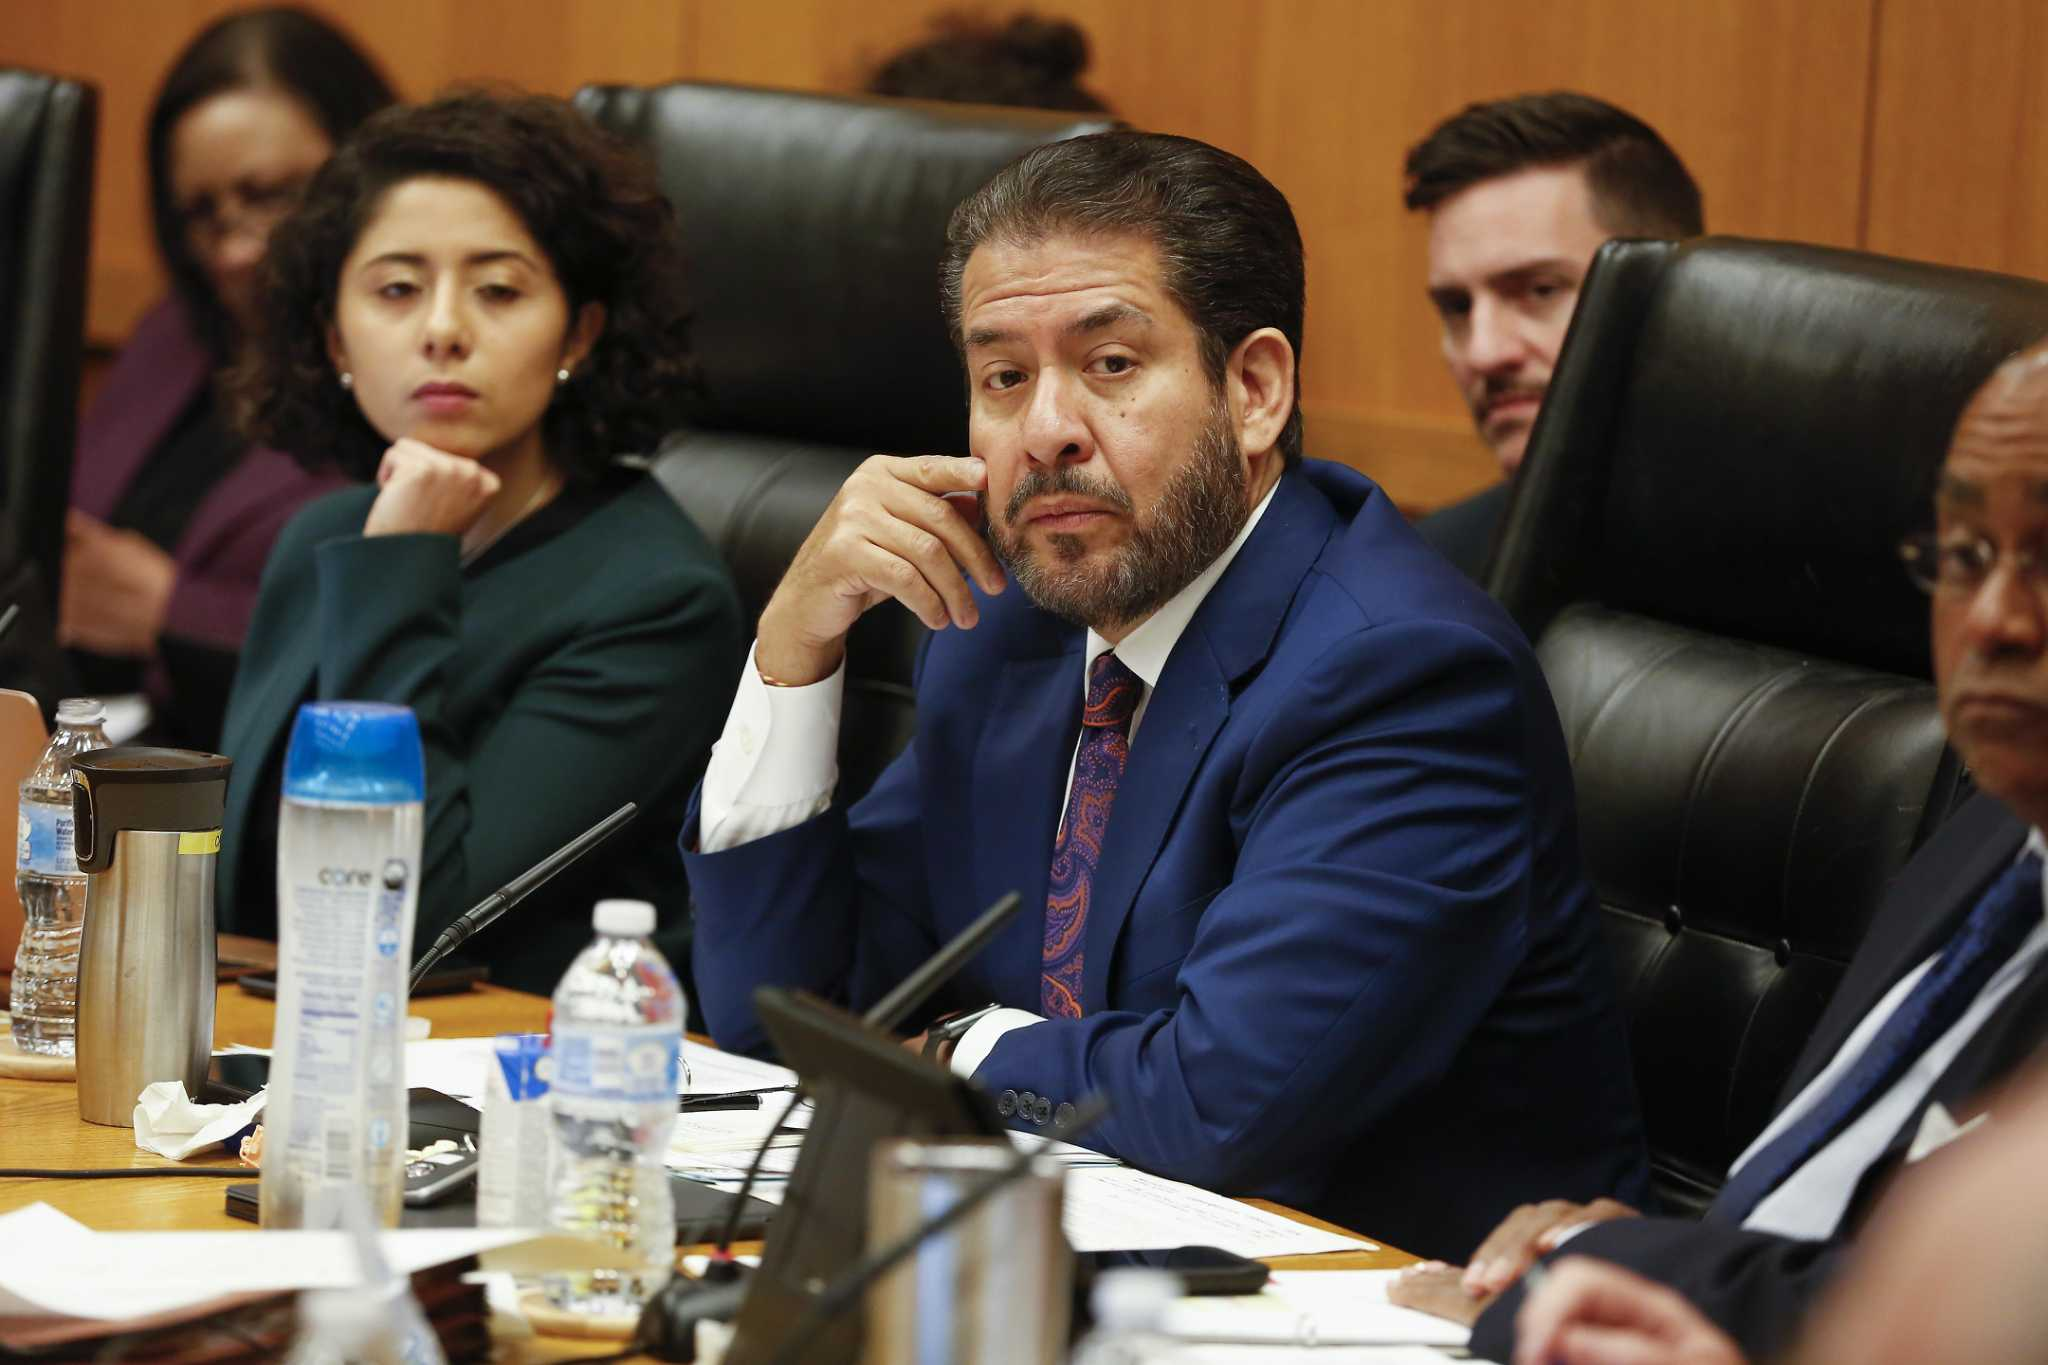 After blackout crisis, Commissioner Adrian Garcia says Harris County should explore leaving ERCOT - Houston Chronicle